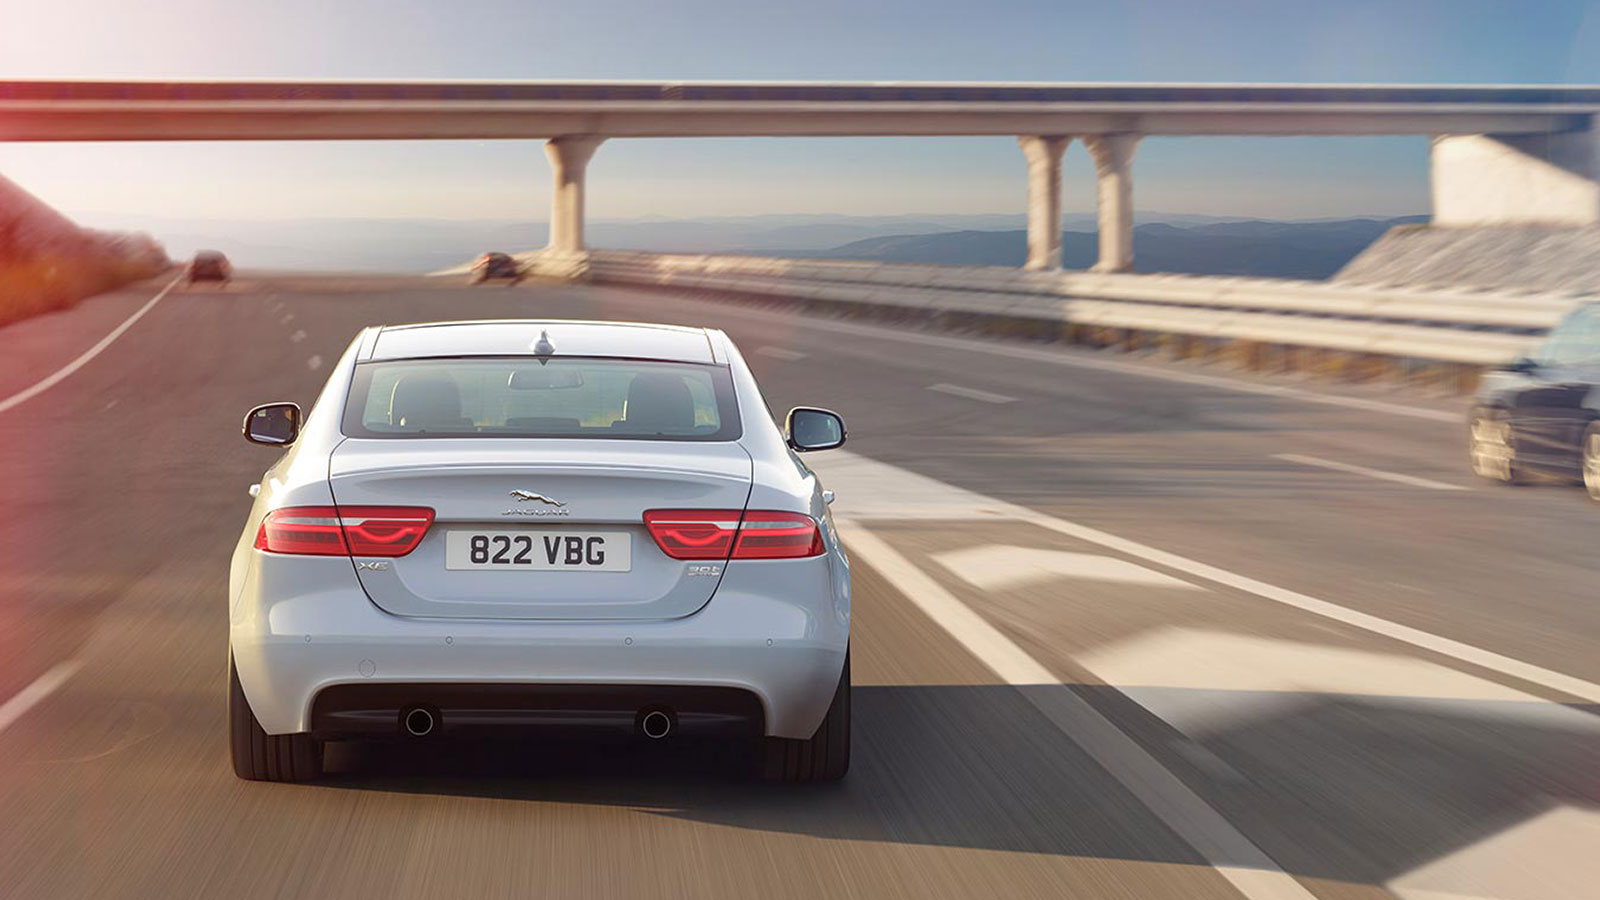 Rear view of Jaguar XE S, driving on a freeway.